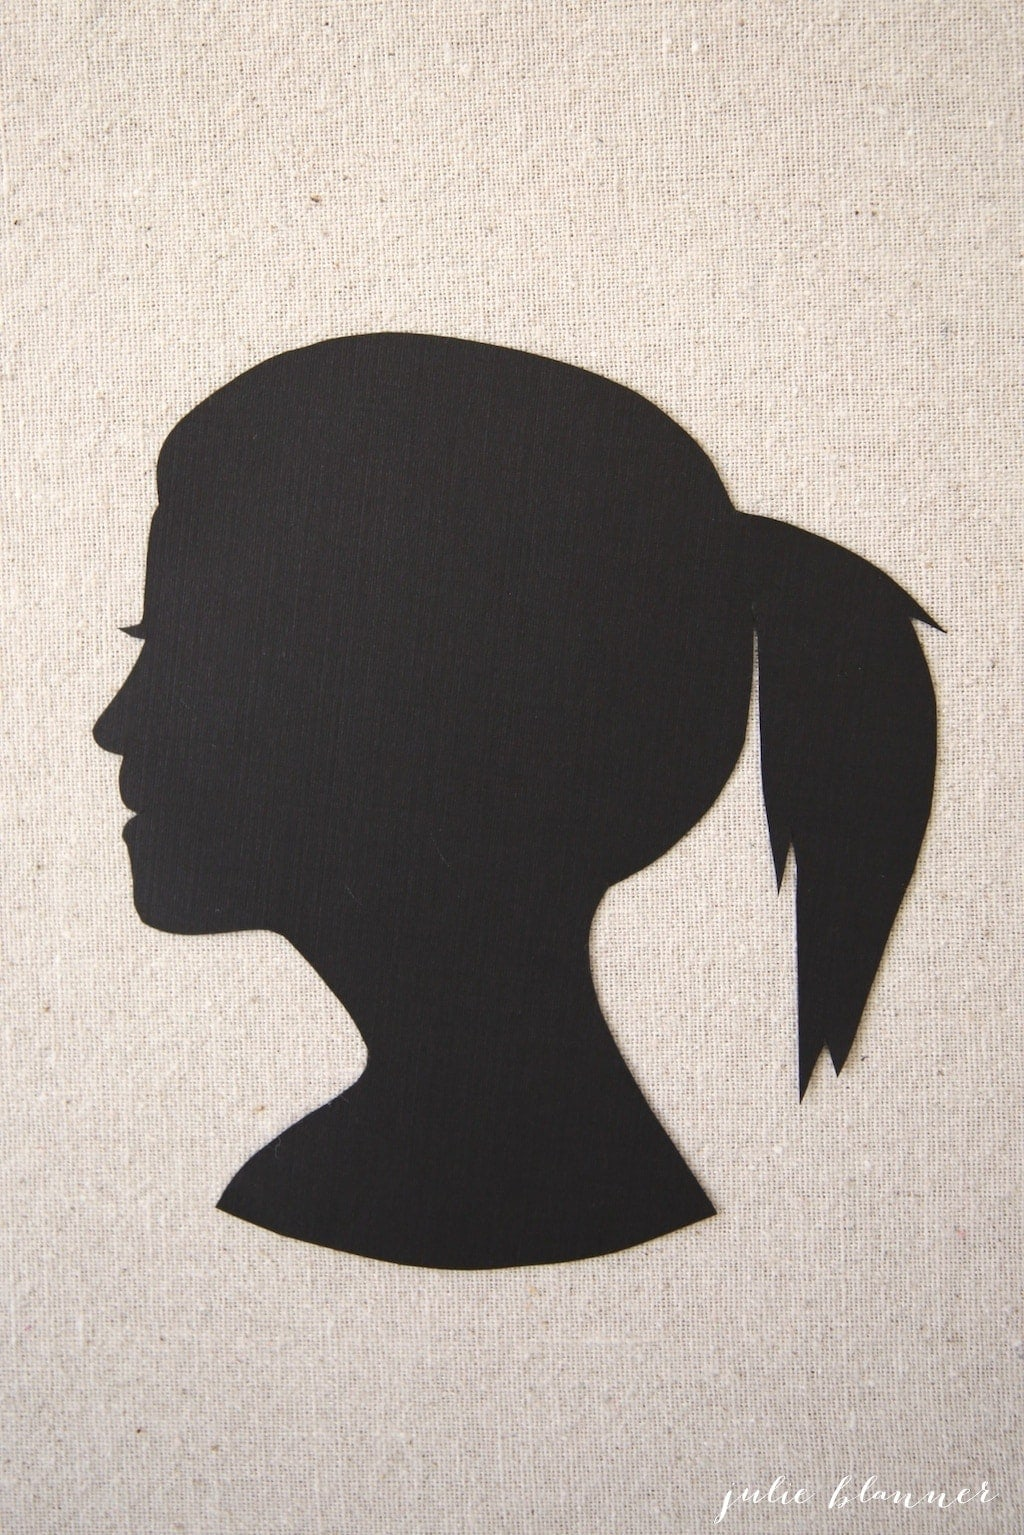 How To Make Your Own Silhouette Portrait